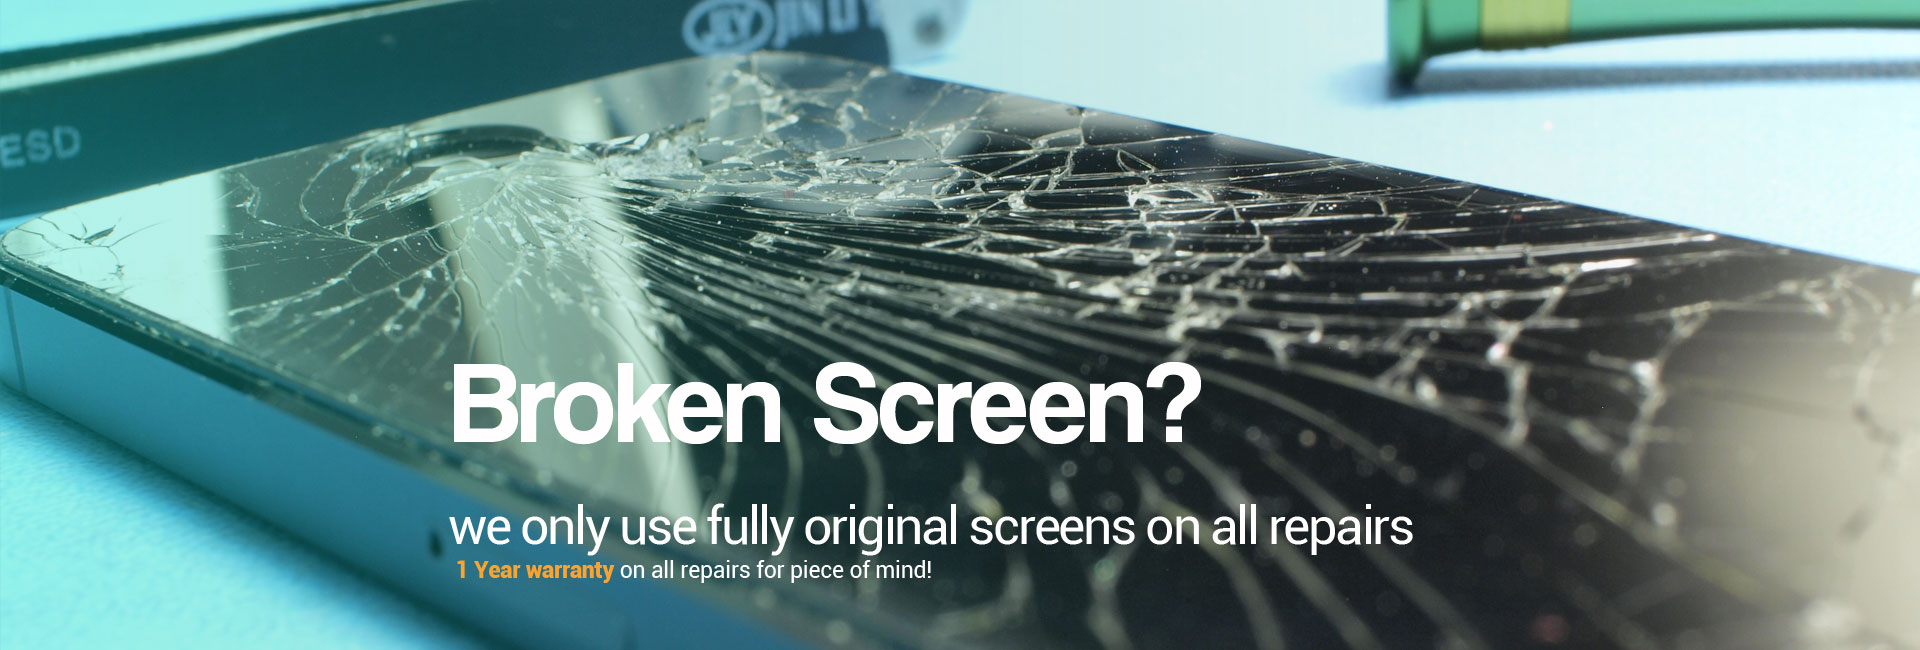 Broken screen? we onlu use fully origina screens on all repairs